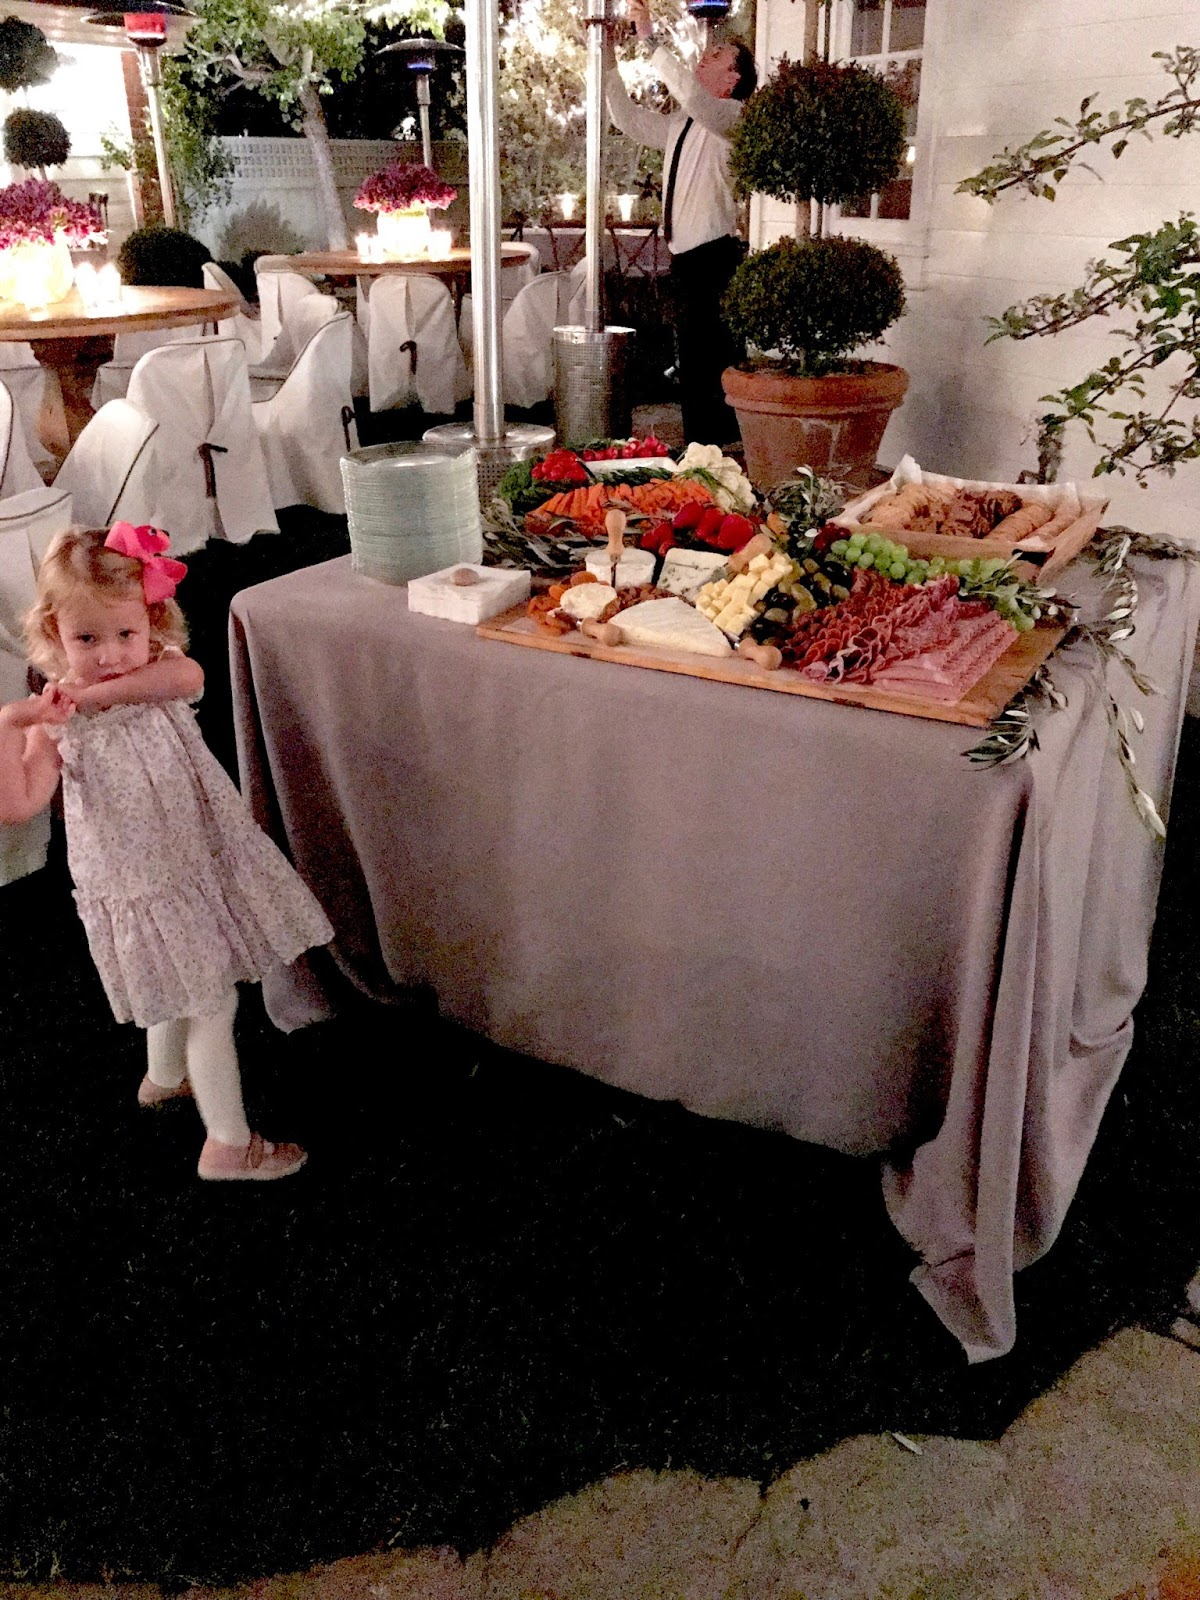 It Was A Cooler Evening For California You Can See Heat Lamps Being Lit This Little One S Attire Matches The Dusty Lavender Theme